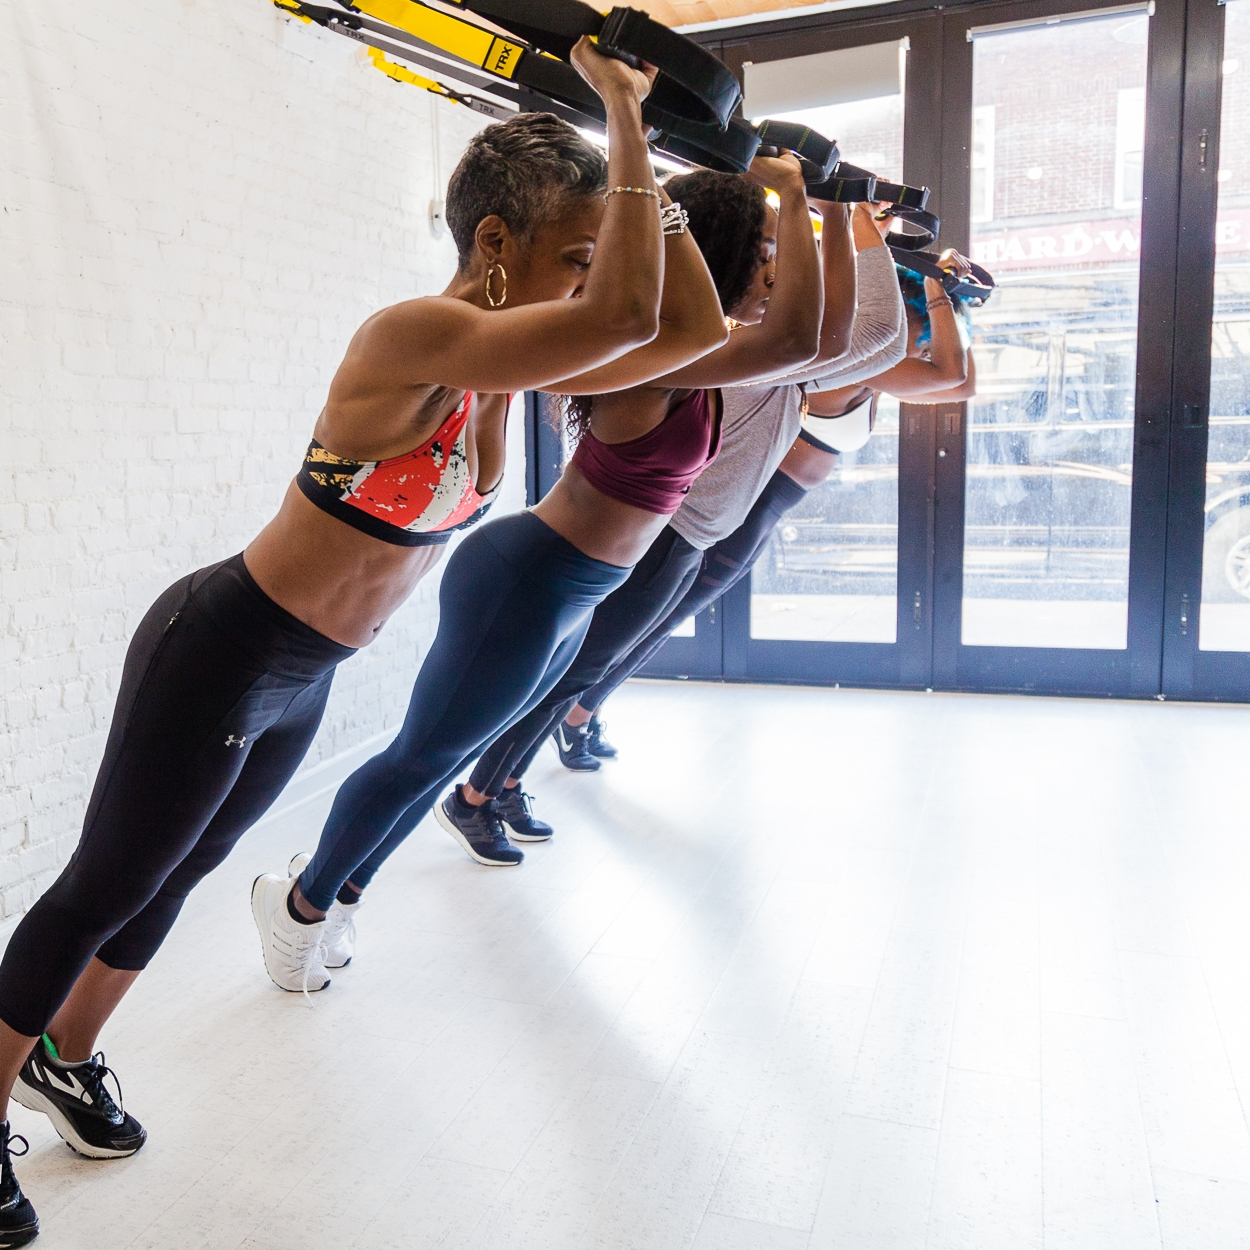 STRONG - Functional strength and resistance training. Using TRX Suspension straps, resistance bands and body weight, work up a sweat and build strength in a circuit format while continuing to work on proper form and alignment. *SNEAKERS ARE REQUIRED*